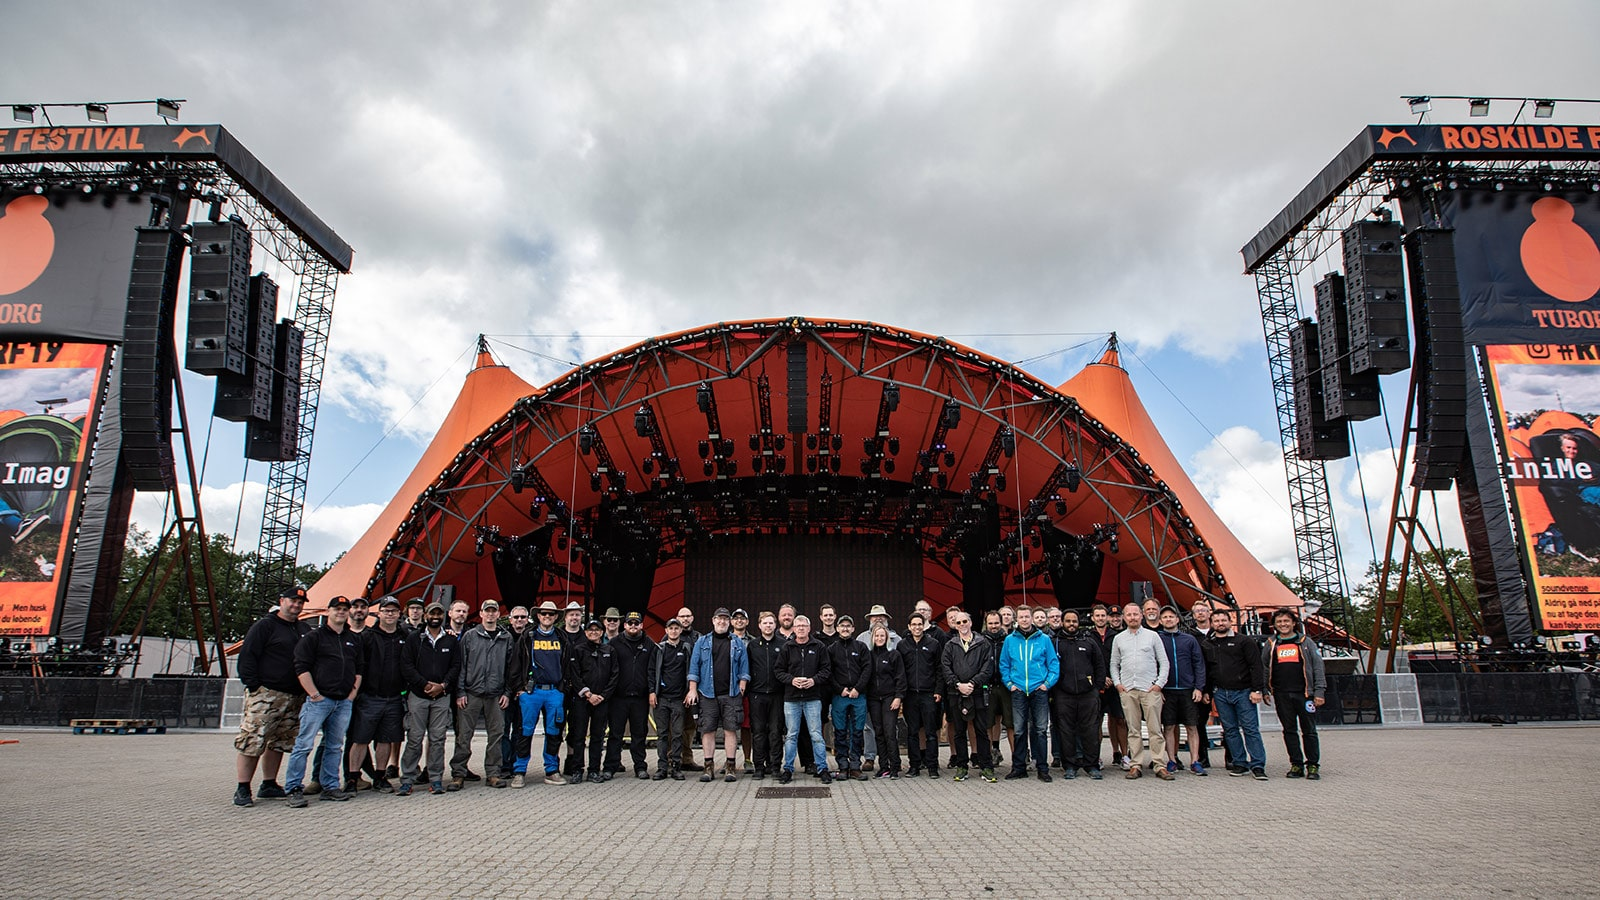 2019 Roskilde Festival, Meyer Sound, and Bright Group Team